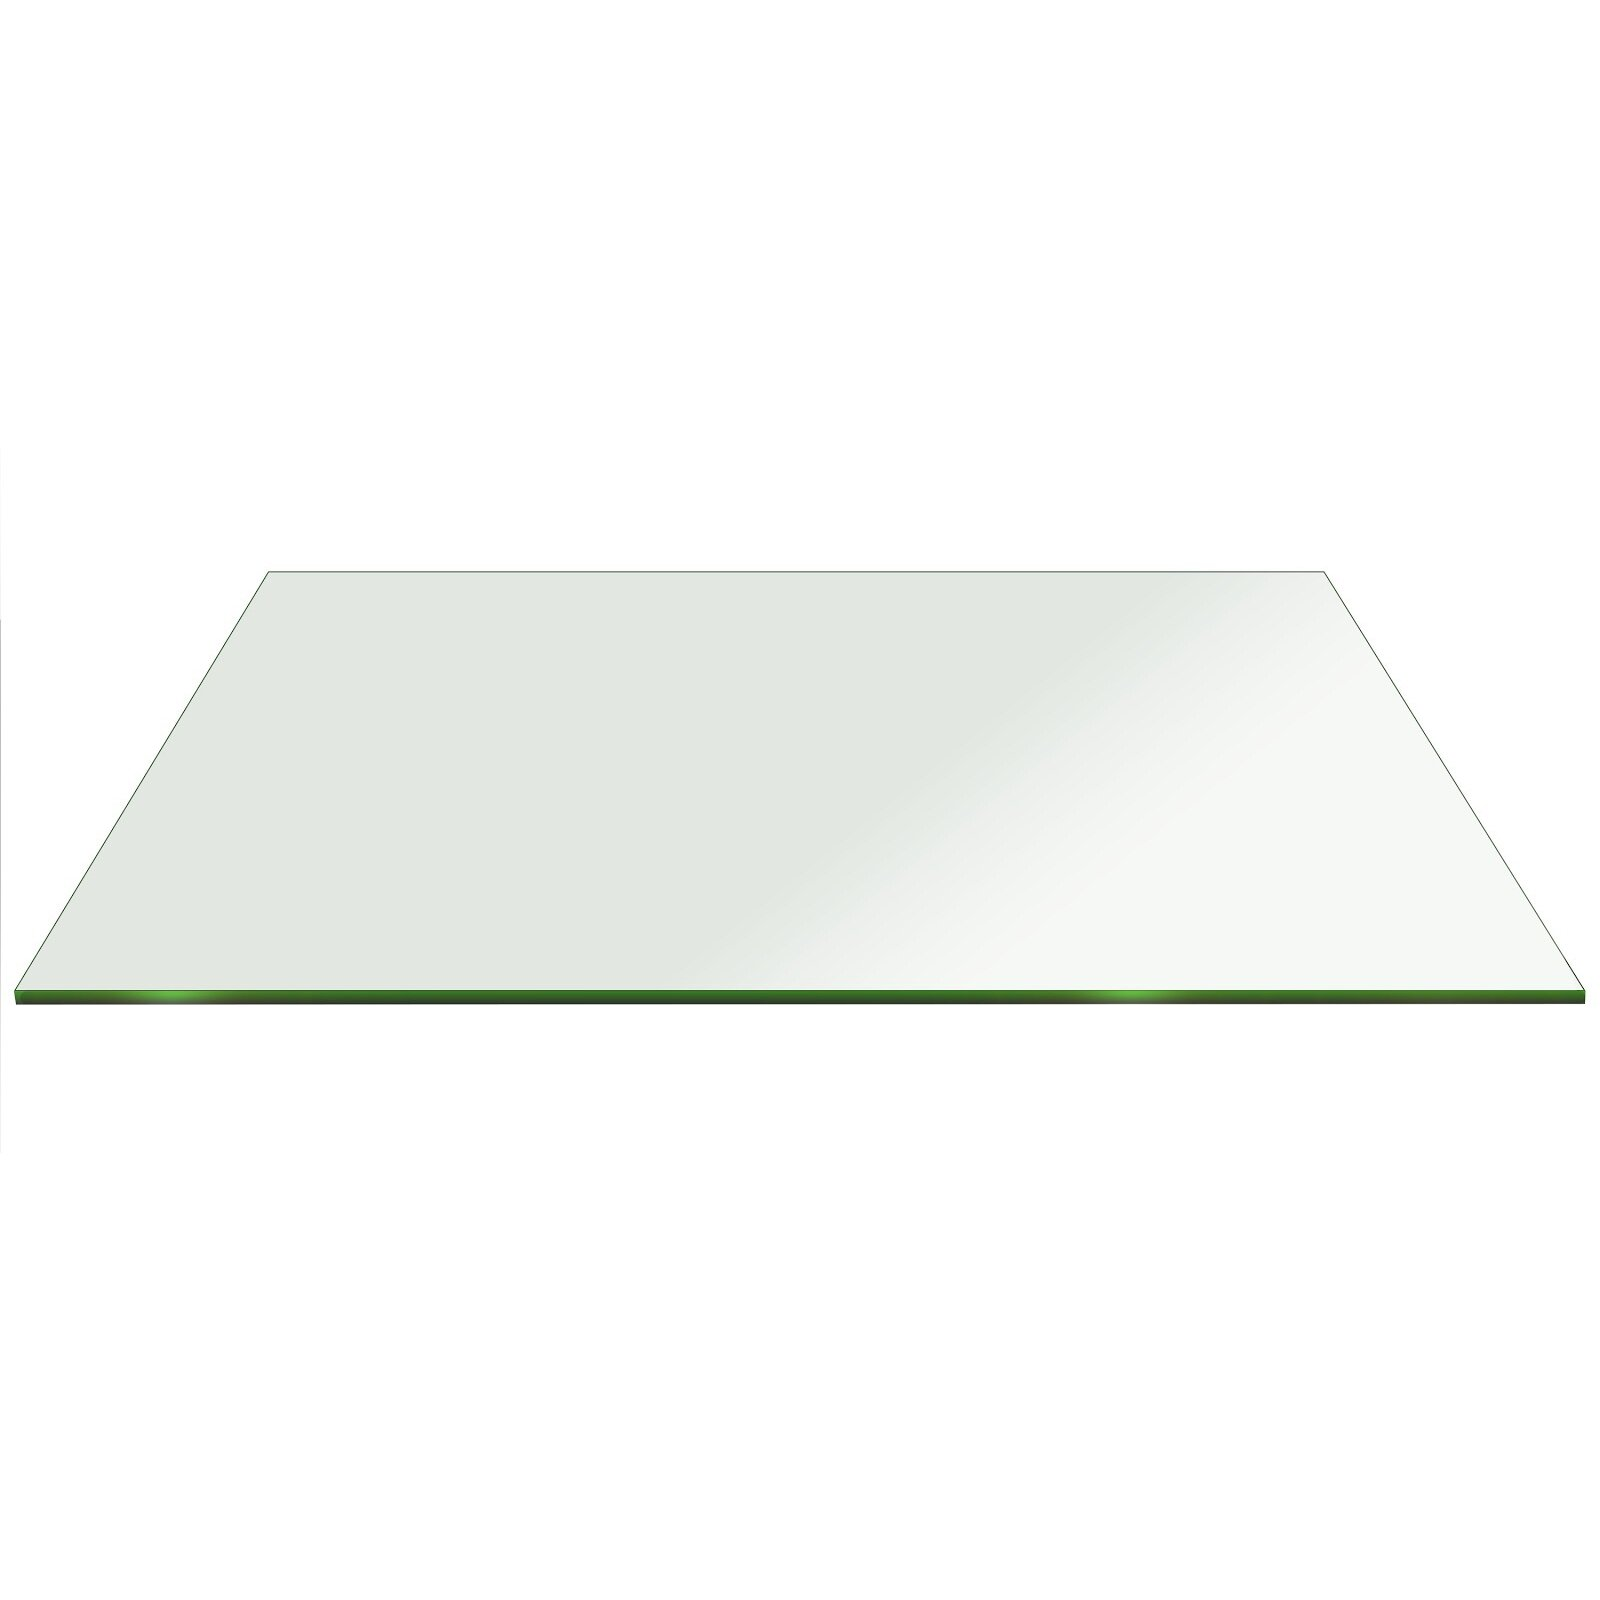 Fab Glass and Mirror Rectangle Glass Flat Edge Tempered  : Rectangle Glass Flat Edge Tempered Eased Corners from www.wayfair.ca size 1600 x 1600 jpeg 31kB